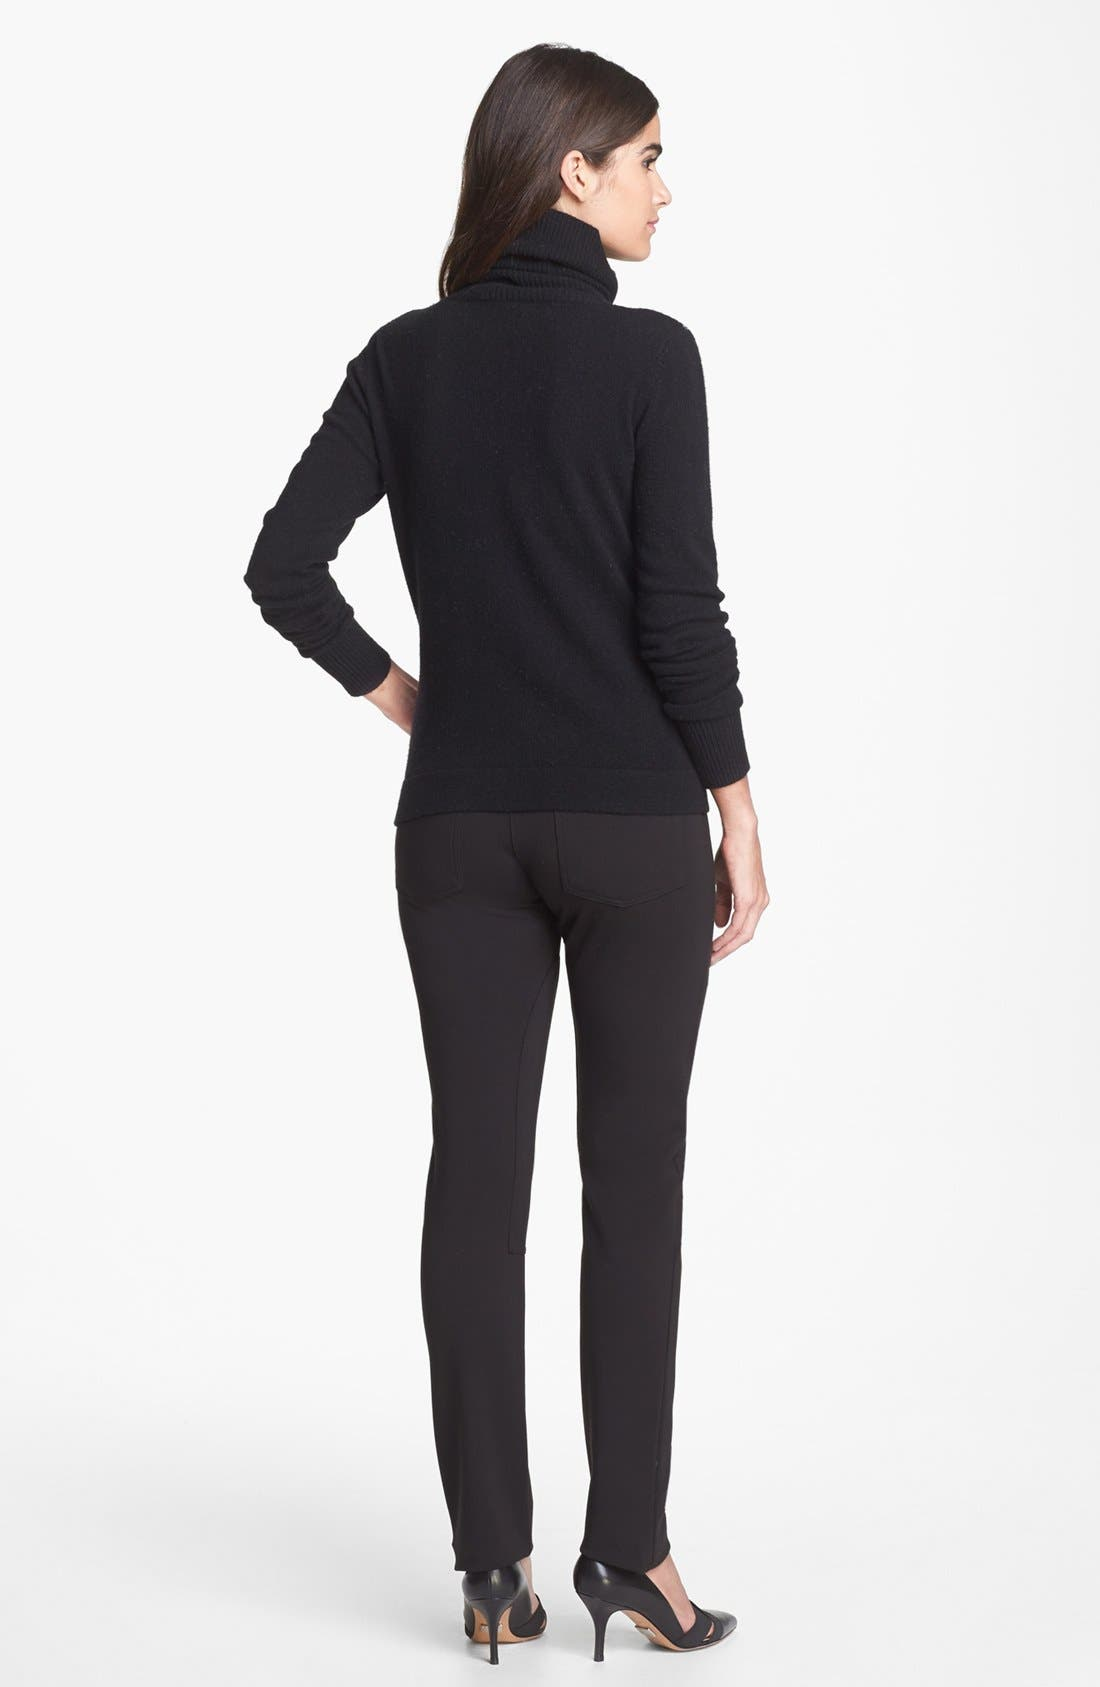 'Slogan' Wool & Cashmere Sweater,                             Alternate thumbnail 5, color,                             001